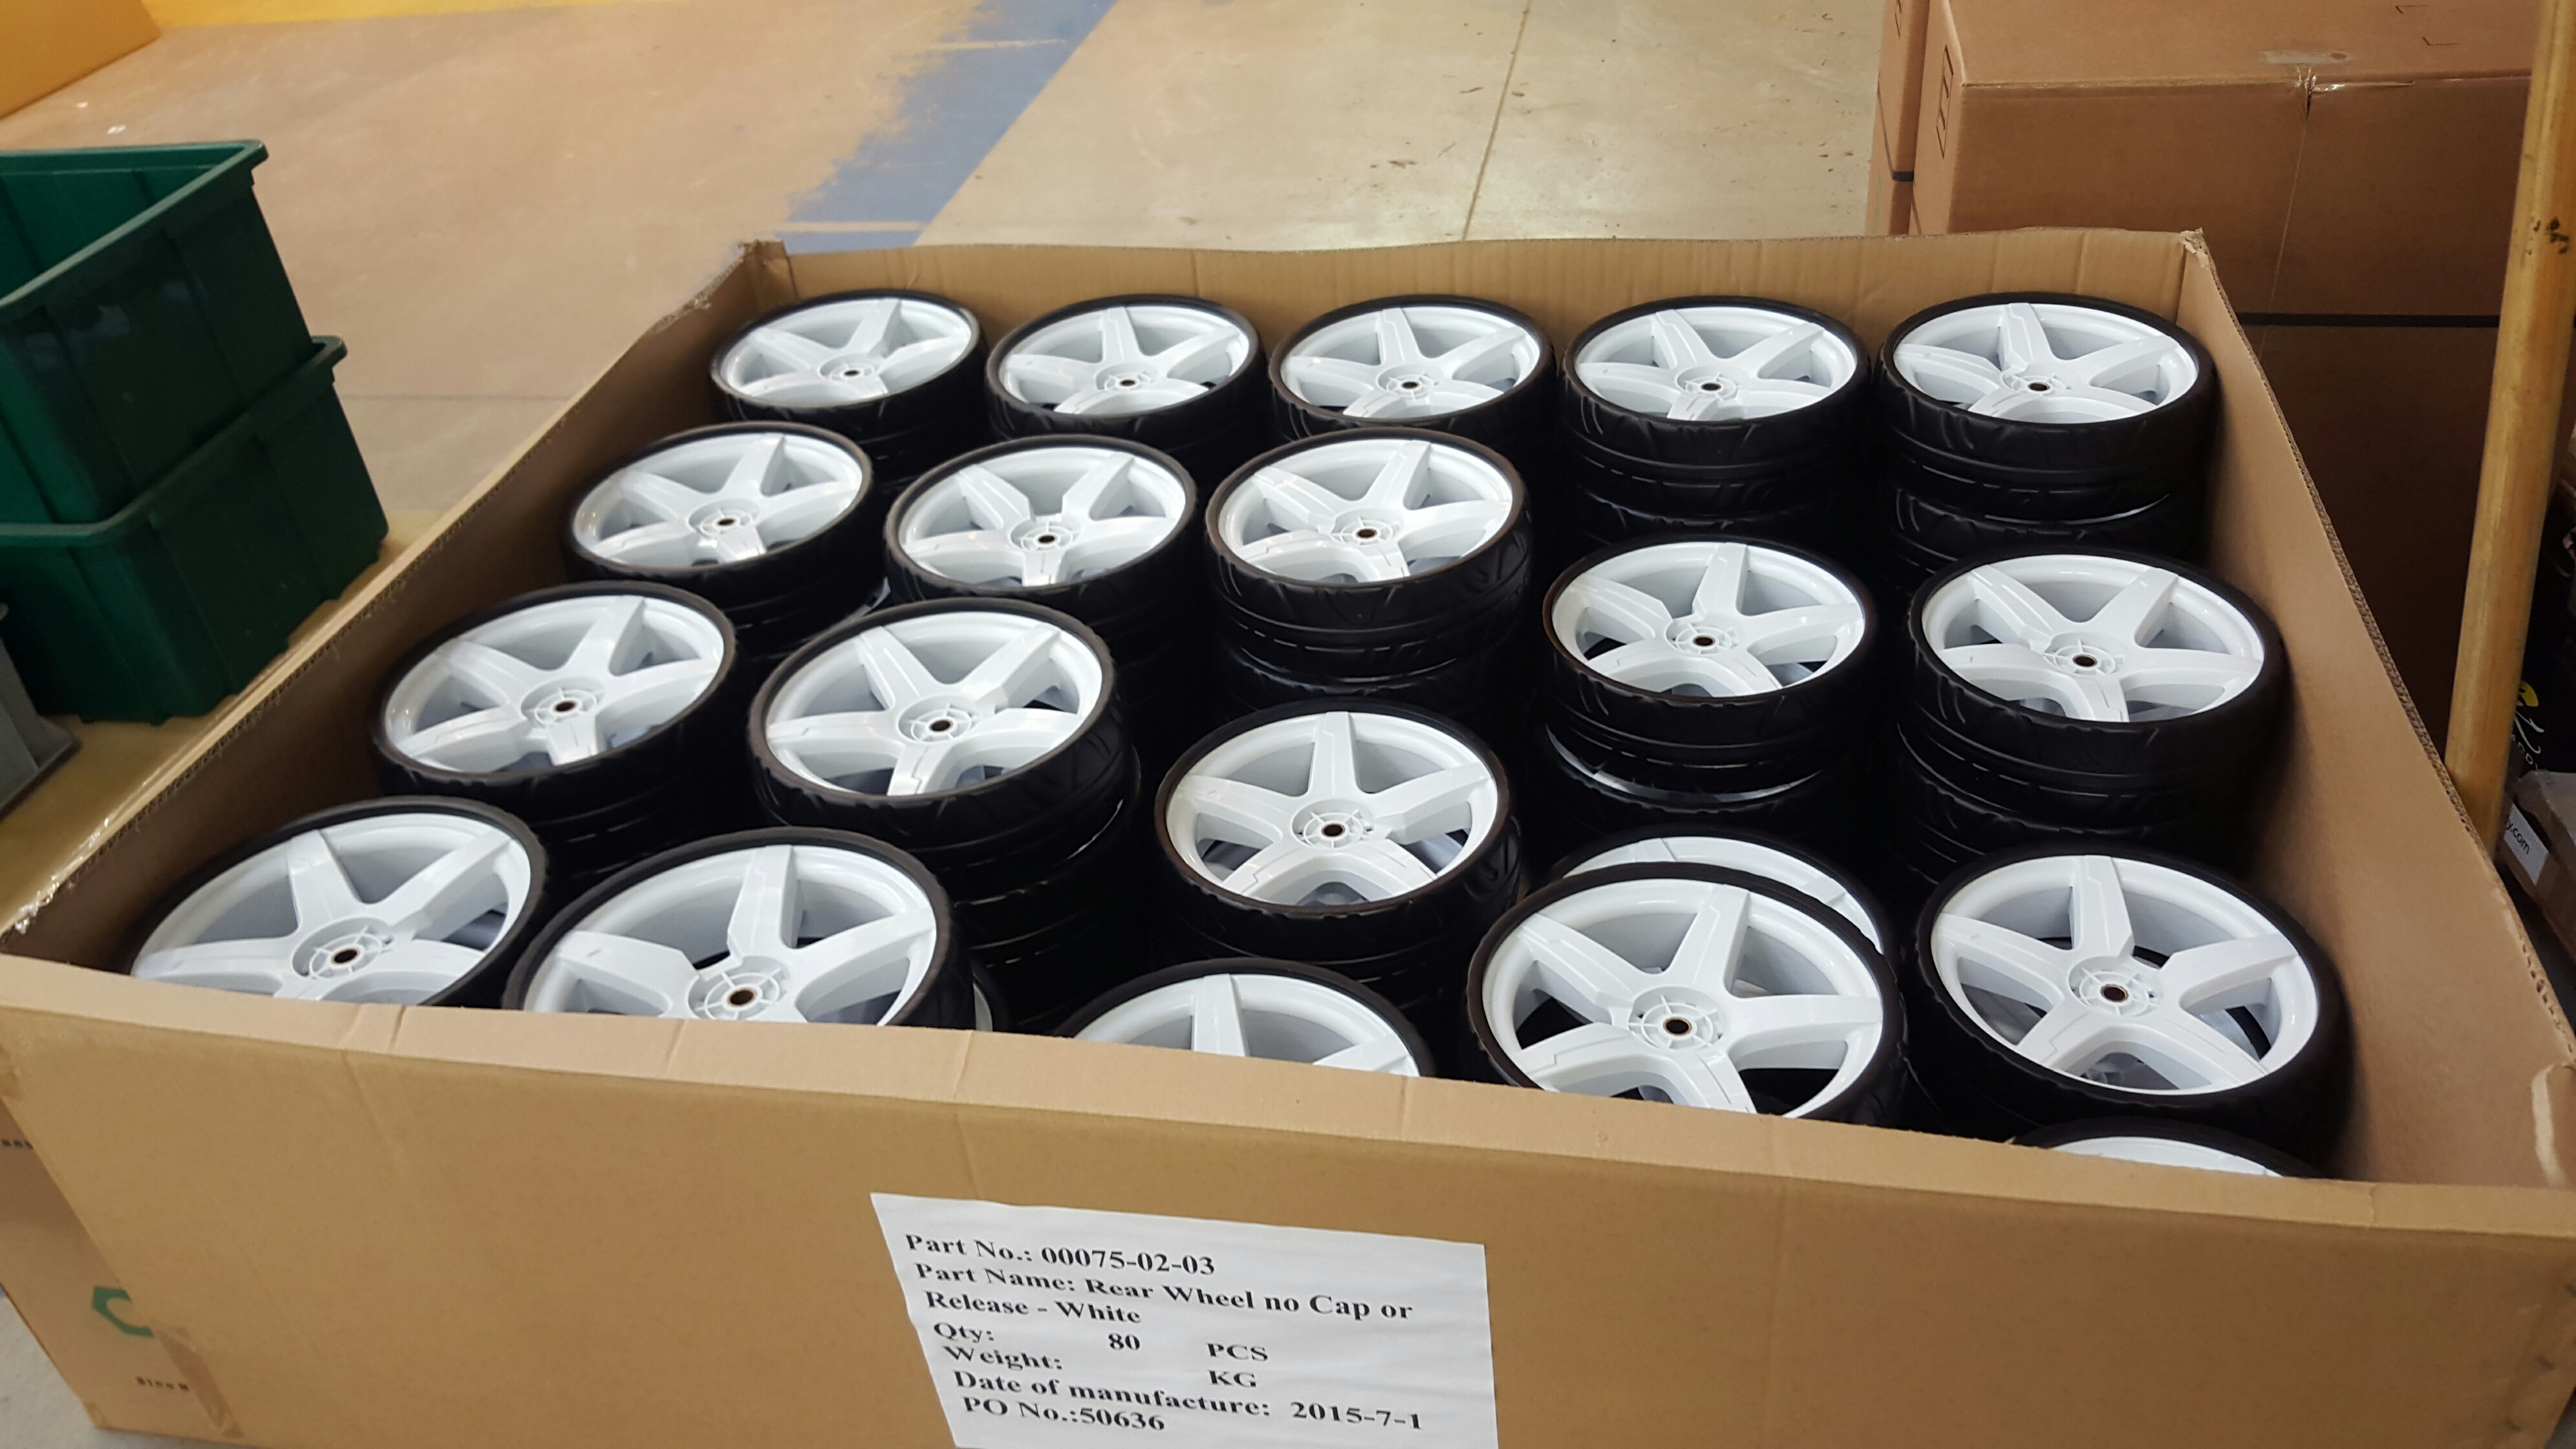 Wheels are removable, and Winter Wheels are available